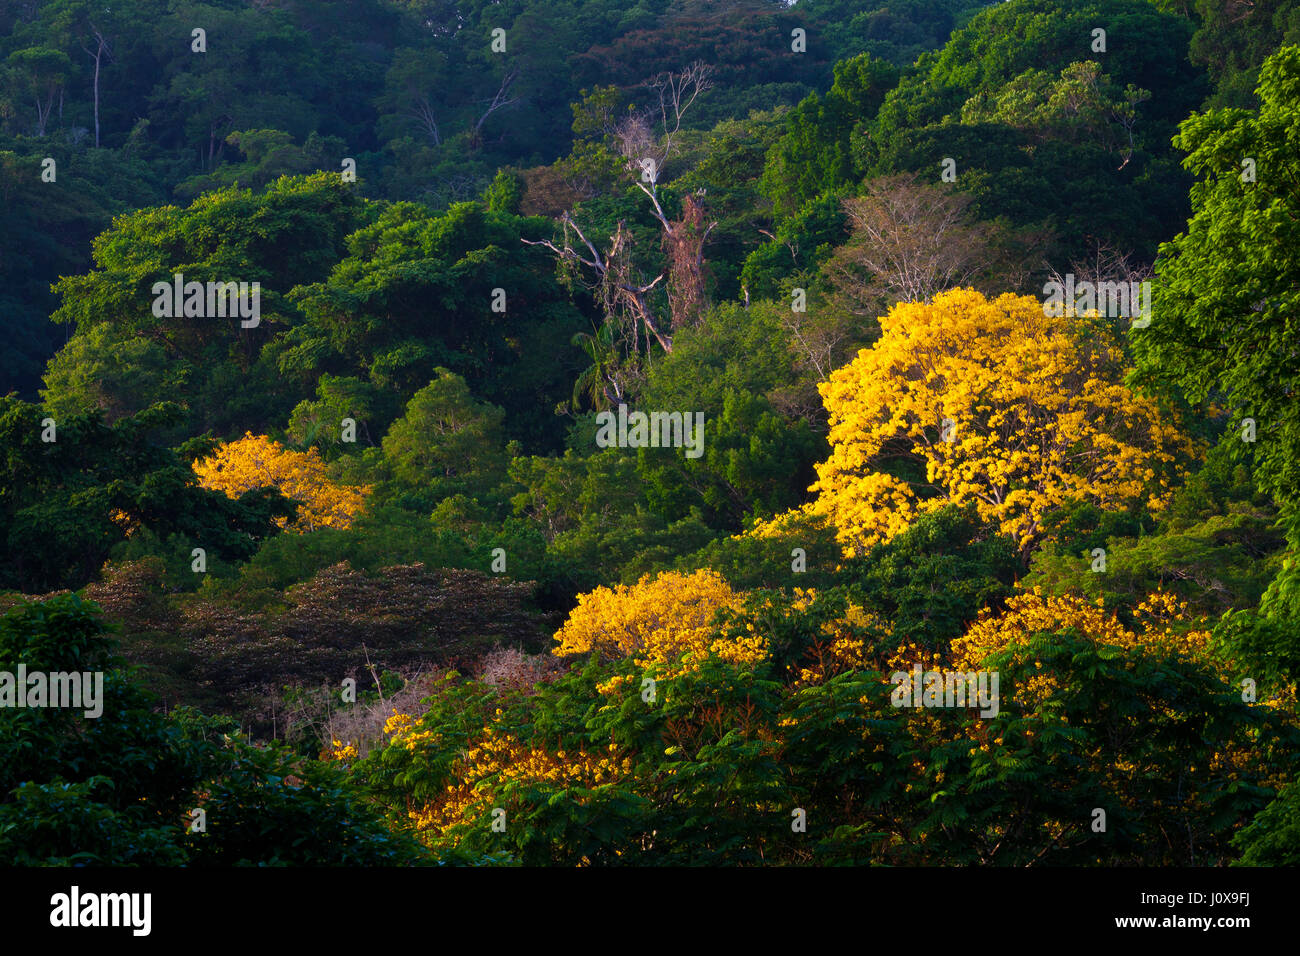 Tropical Rainforest Canopy With Yellow Flowering Trees Stock Photos